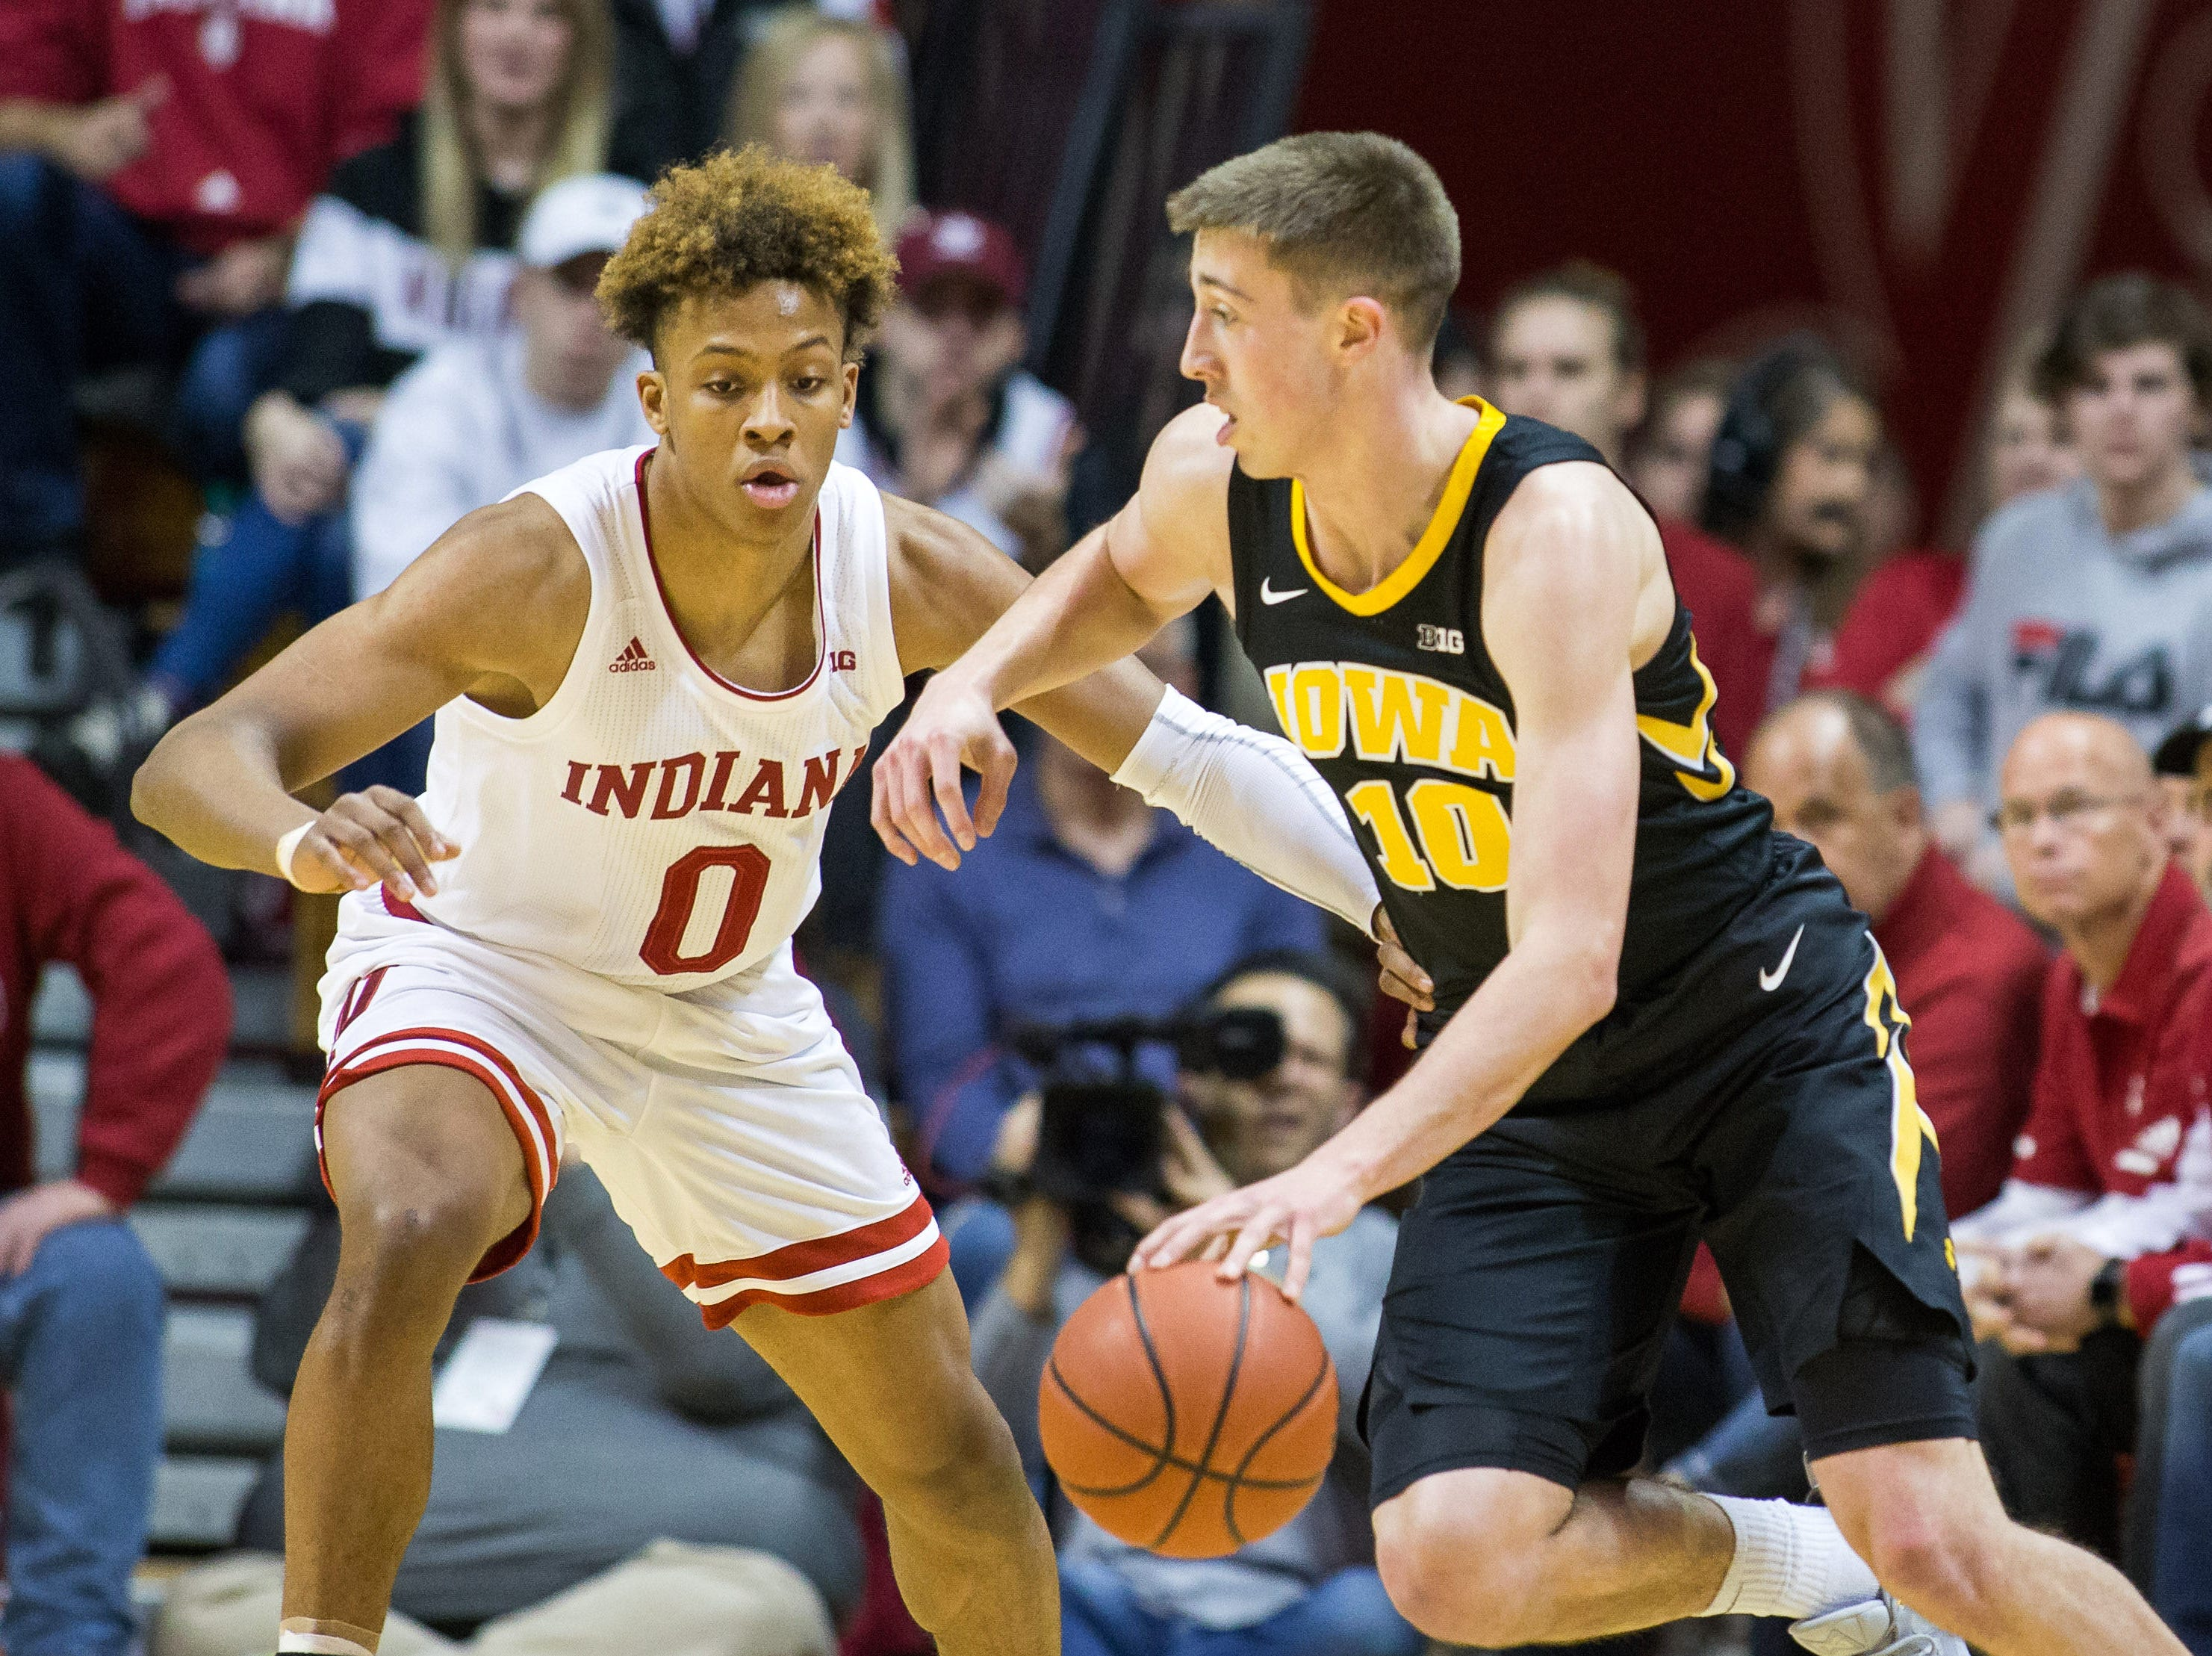 Iowa Hawkeyes guard Joe Wieskamp (10) dribbles the ball while Indiana Hoosiers guard Romeo Langford (0) defends in the first half on Thursday, Feb 7, 2019, at Assembly Hall in Bloomington, Indiana.